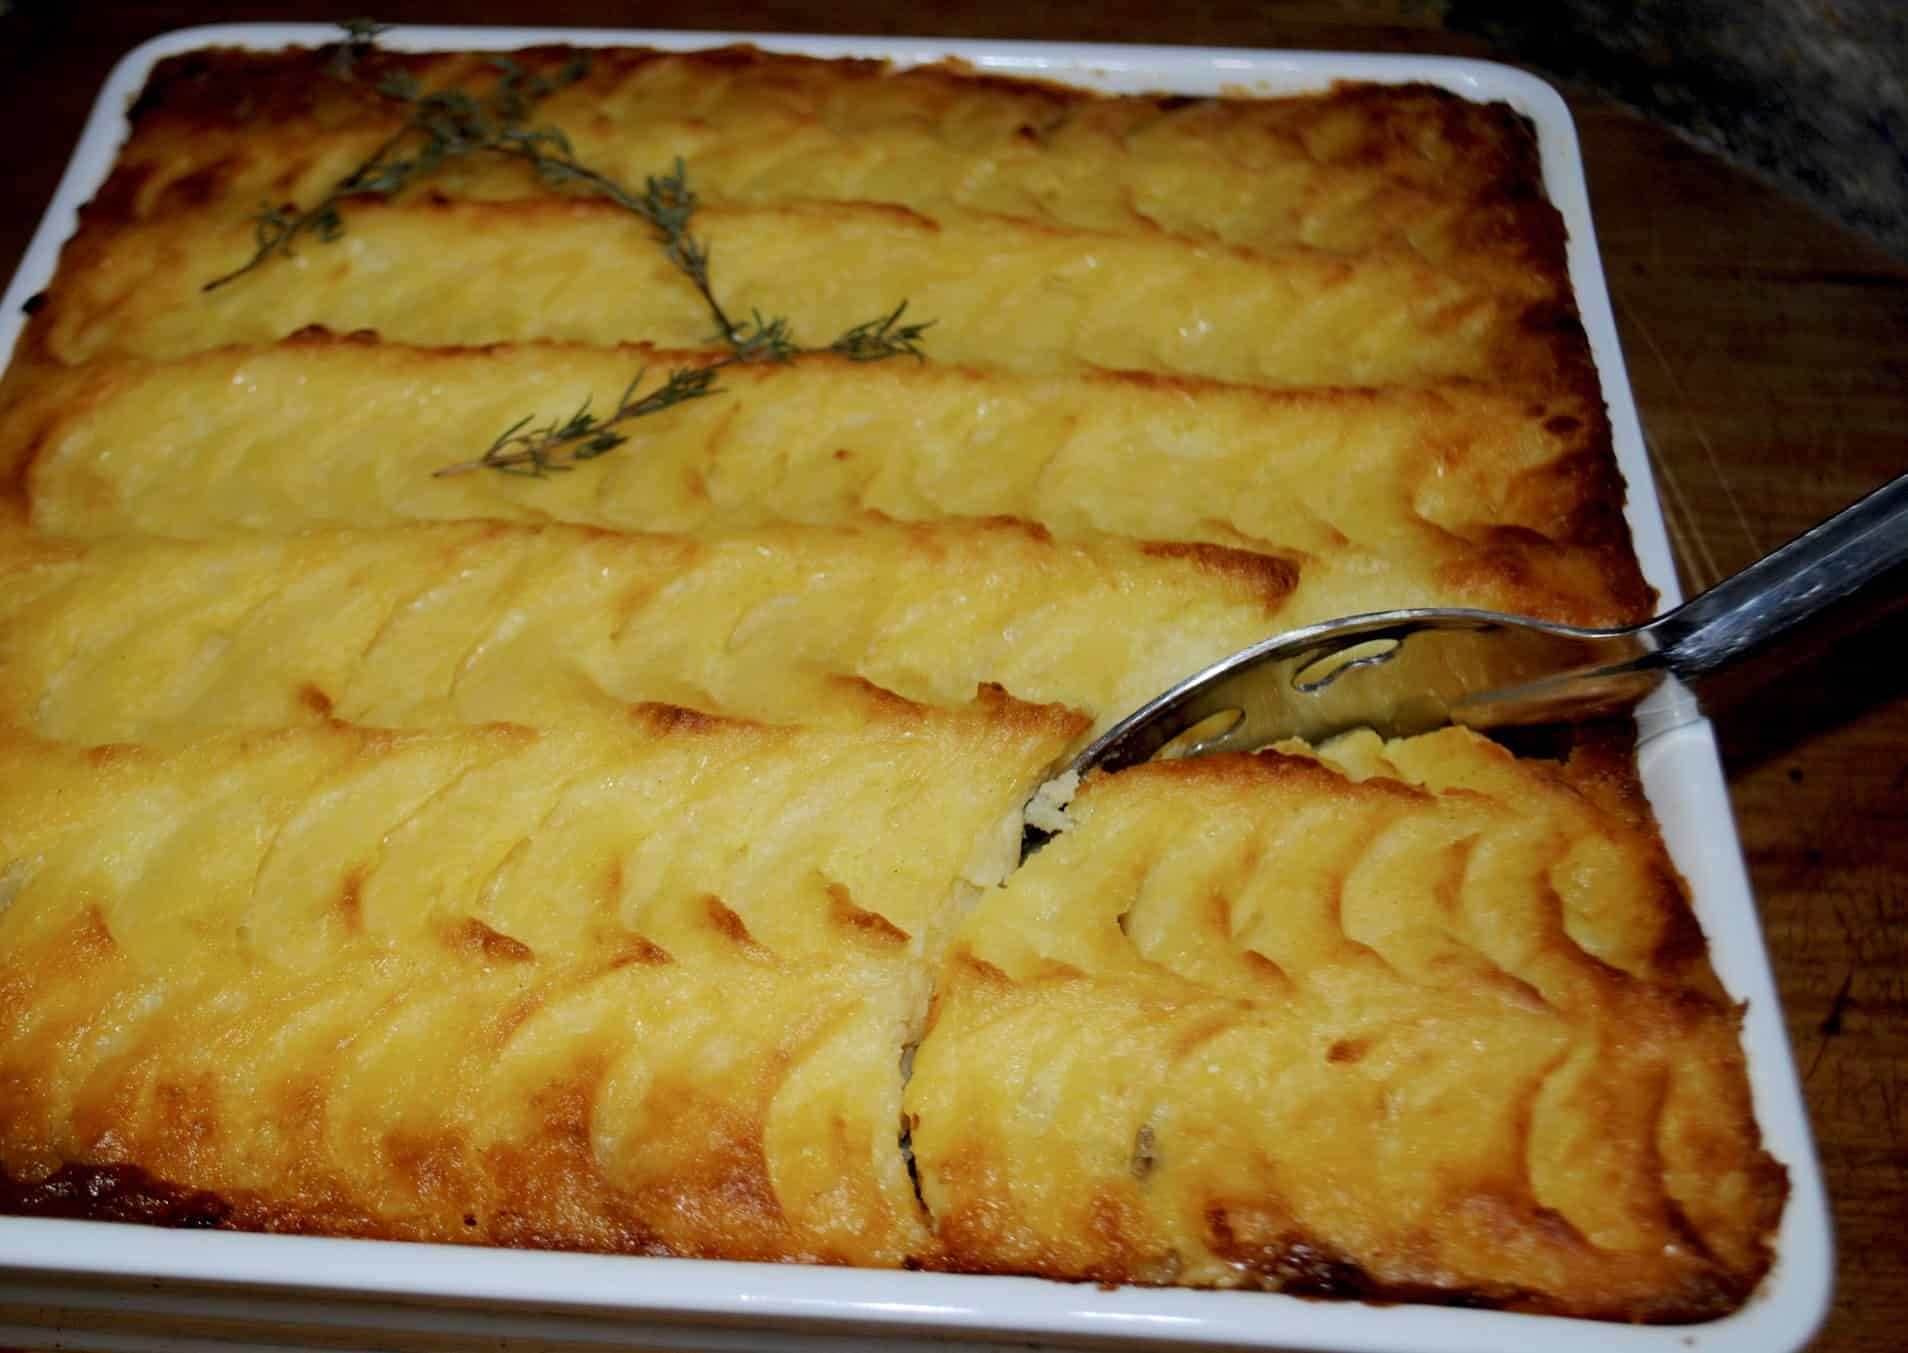 shepherds pie - pie fresh from oven with metal spoon cutting into the pie